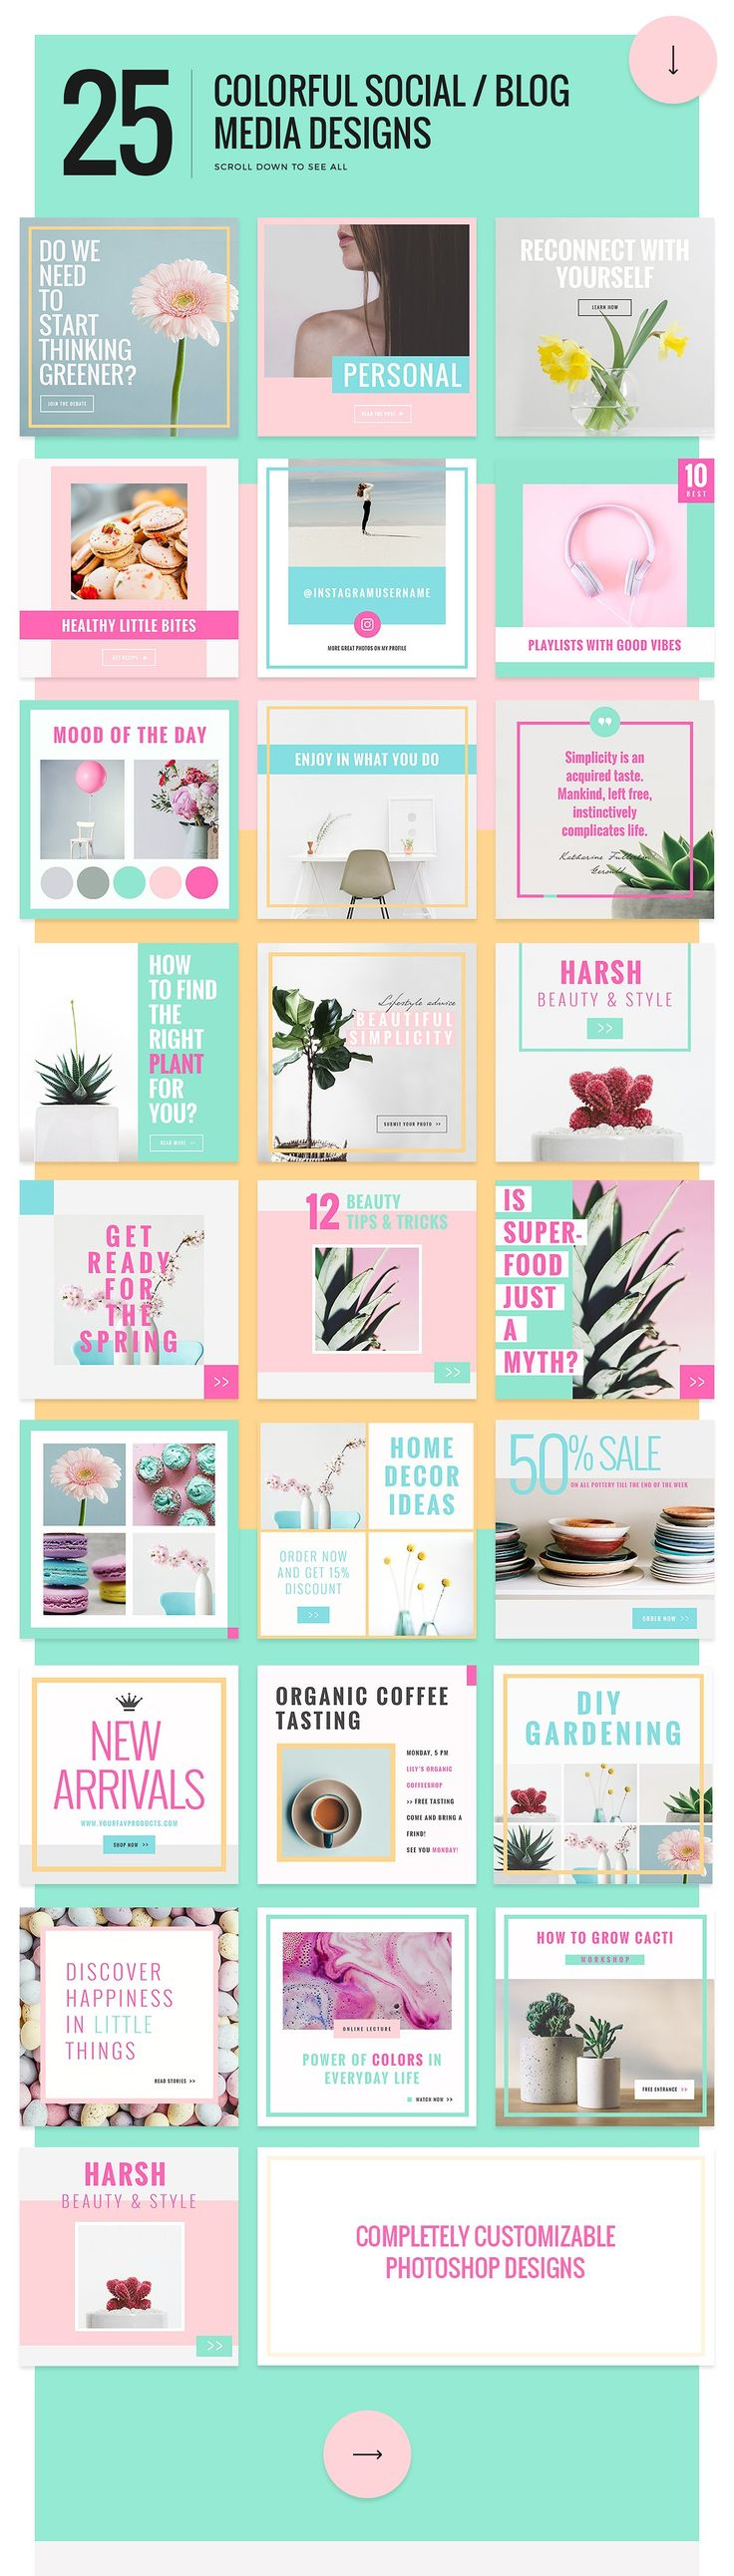 Colorful Social & Blog Media Designs by NordWood on @creativemarket